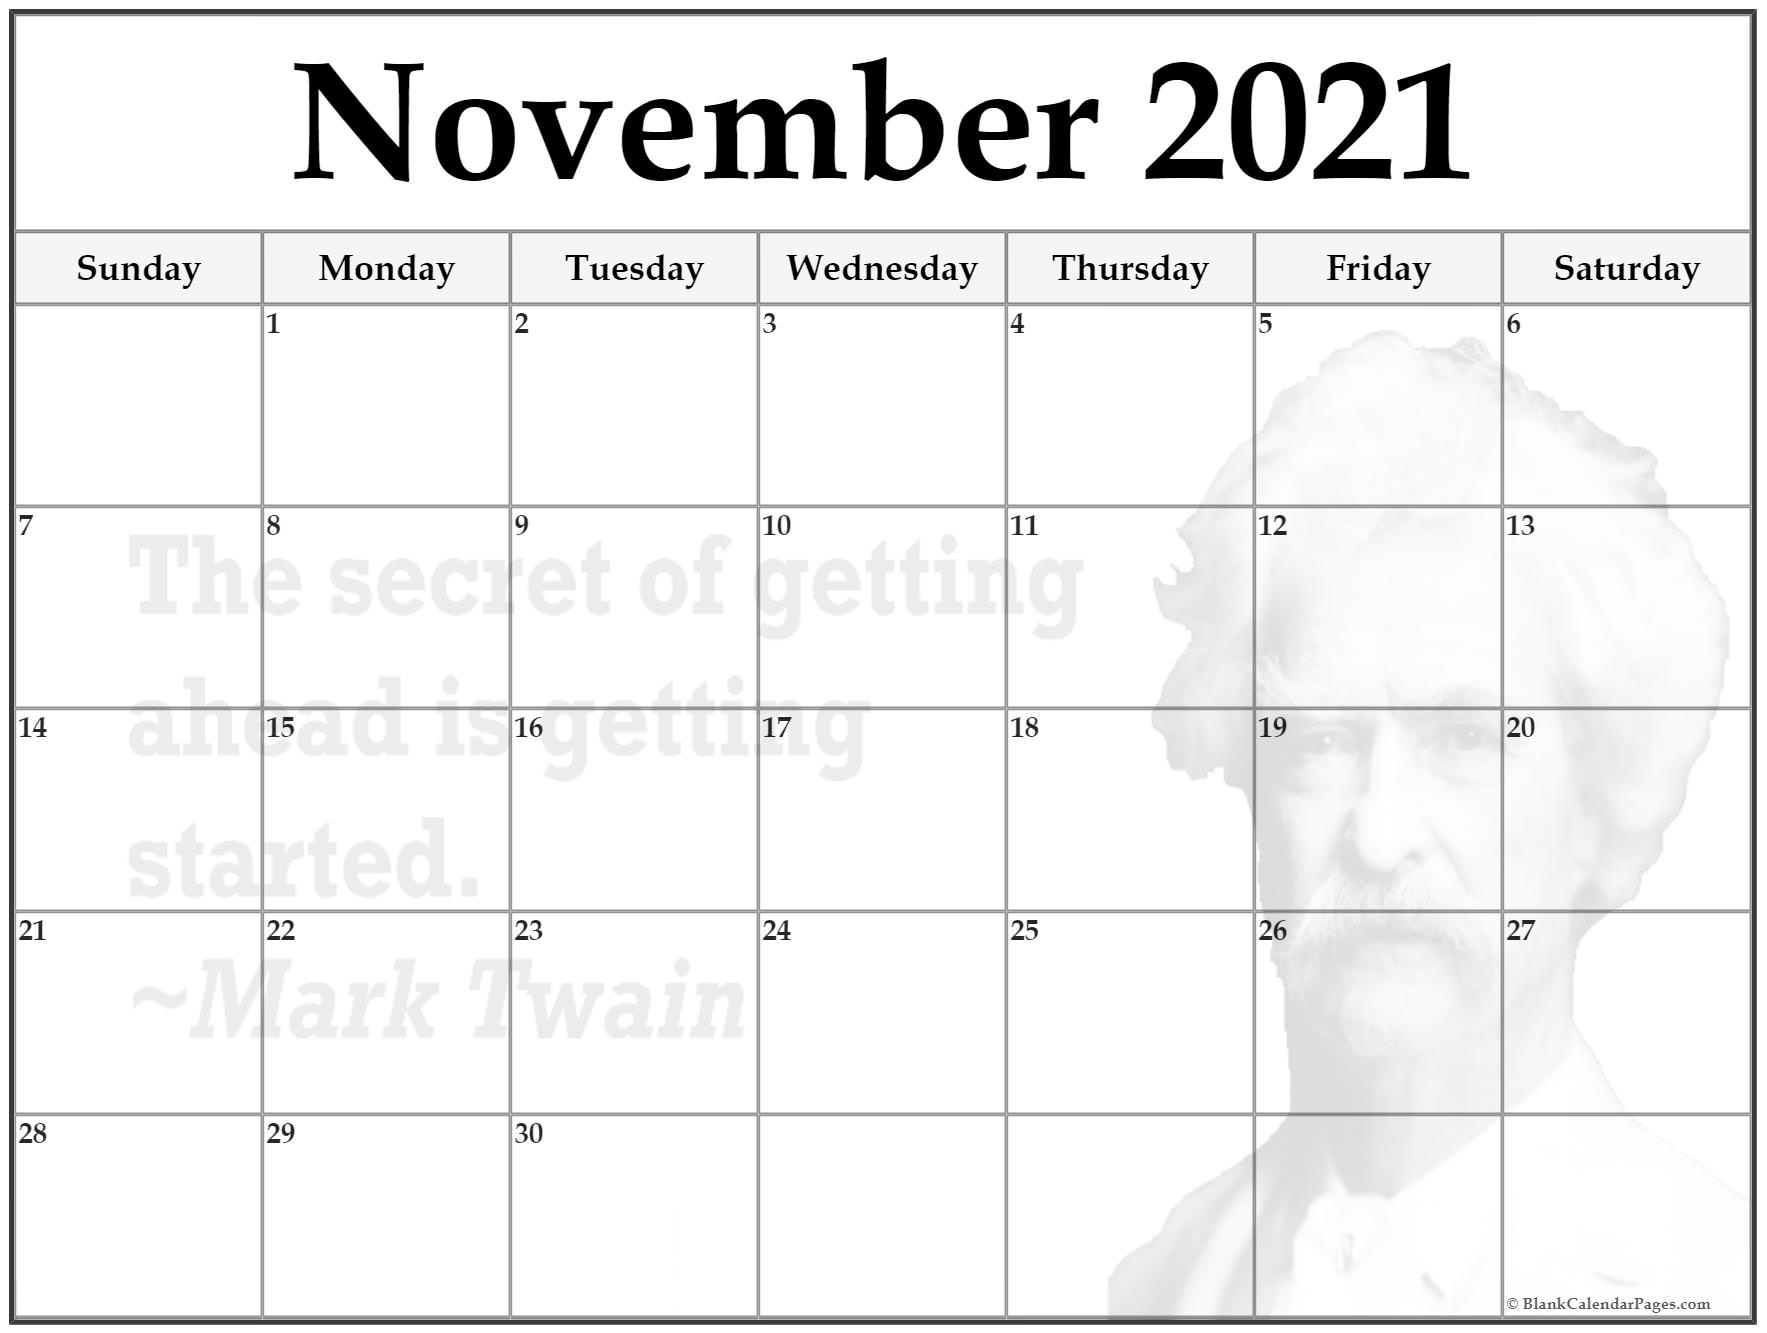 November 2021 with twain quotes. The secret of getting ahead is getting started. ~Mark Twain